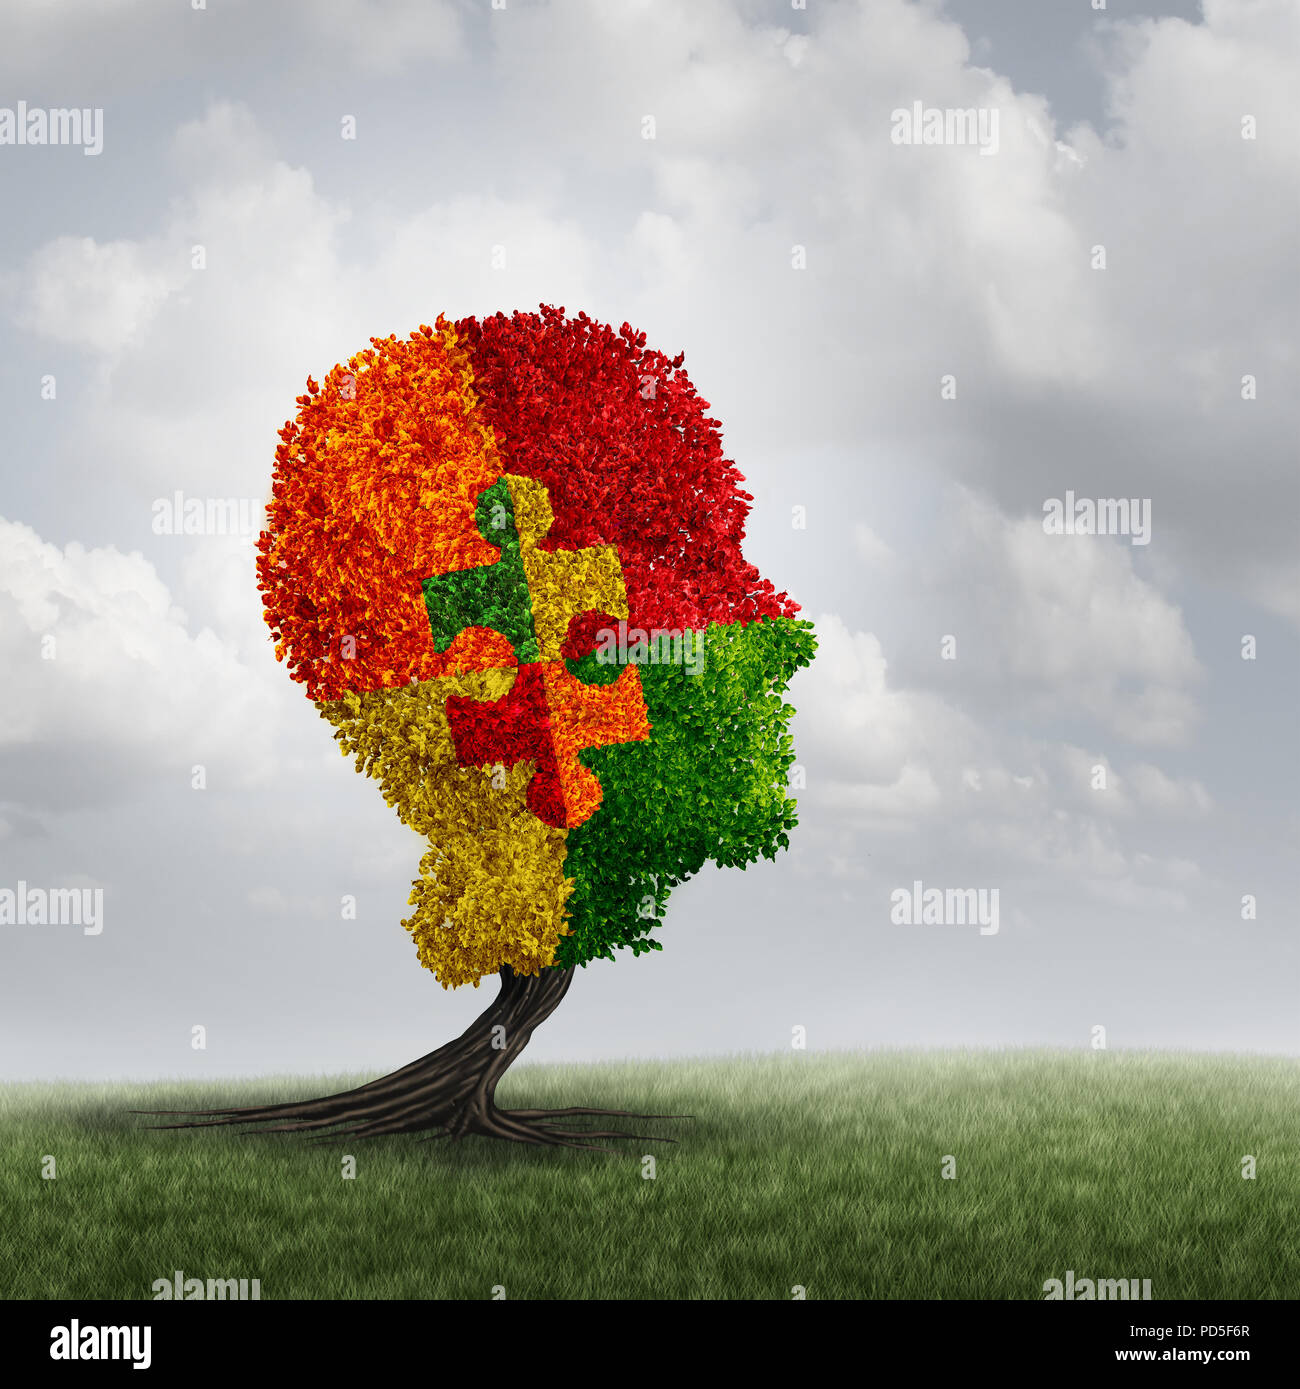 Autism awareness concept and autistic development disorder as a growing tree symbol of communication and the puzzle of social psychology. - Stock Image